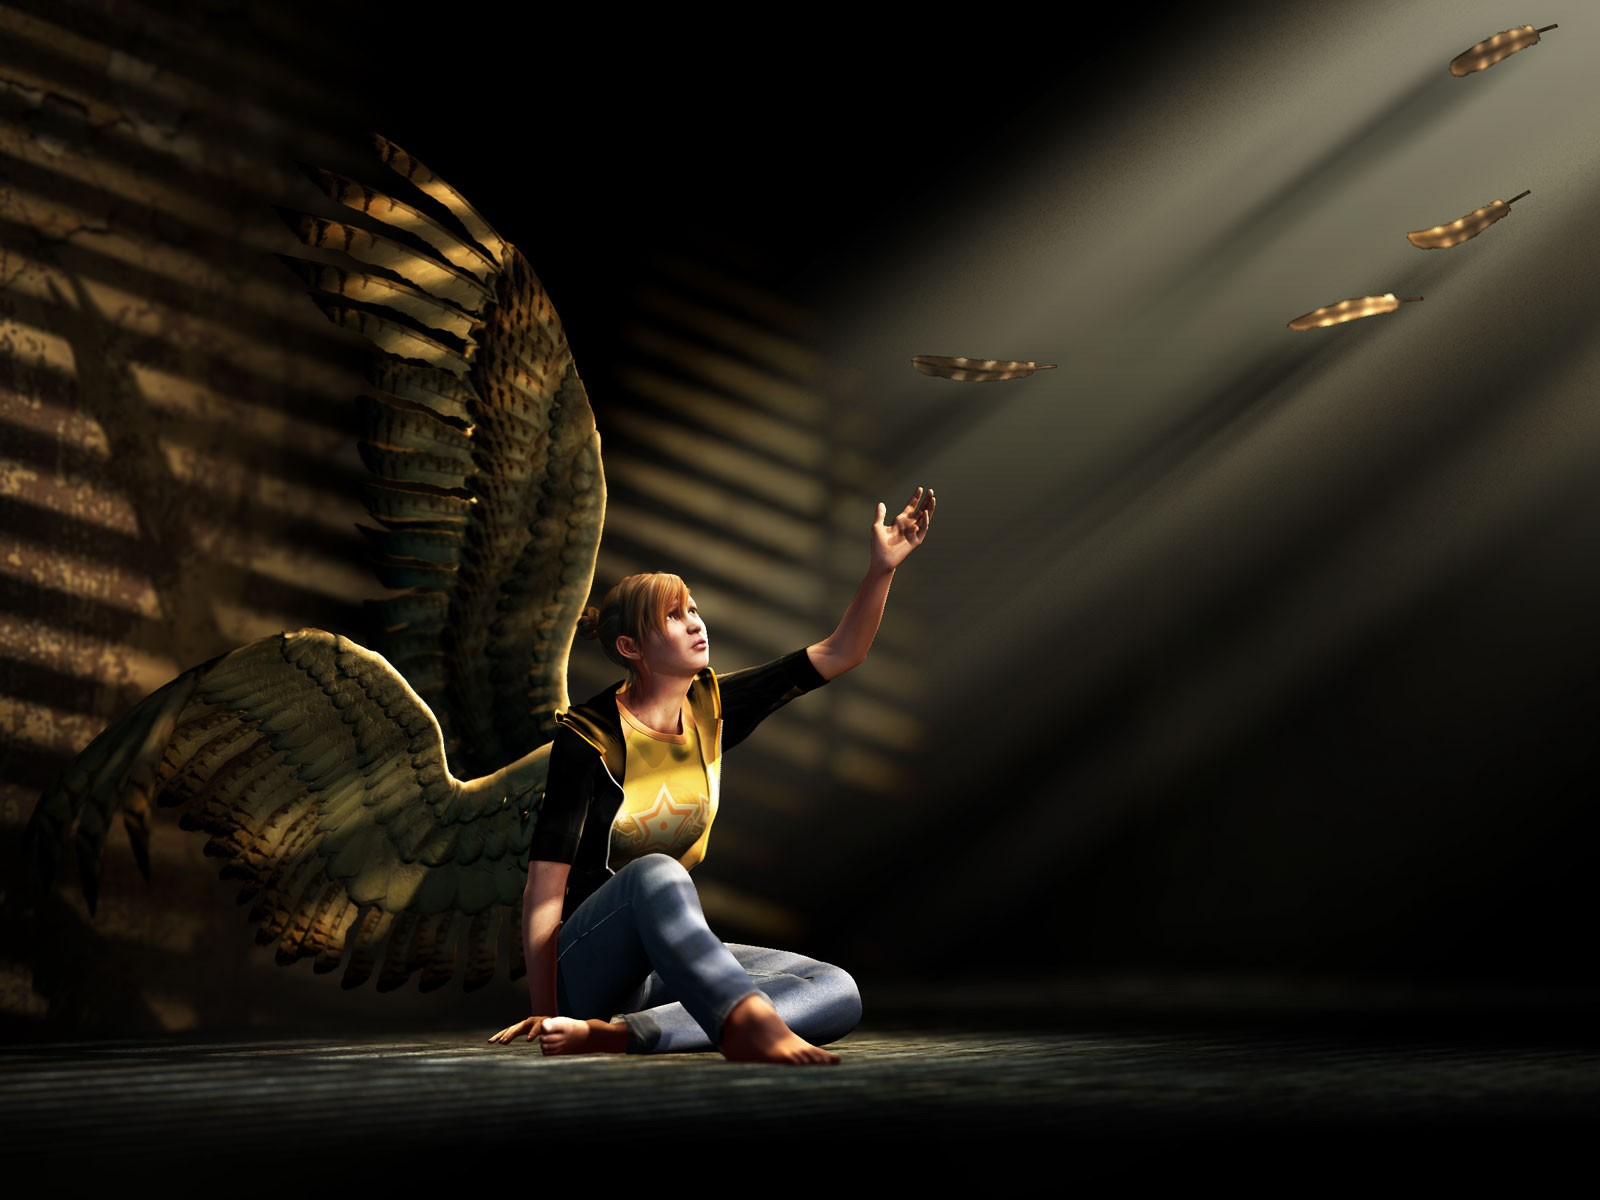 http://3.bp.blogspot.com/-OWK-sKEzVYs/UPJcnyuTbwI/AAAAAAAAALI/087wpEhW-3Y/s1600/angle-sitting-trying-to-catch-her-wings-with-black-lining-background-cartoon-hd-wallpapers-1600-x-1200.jpg